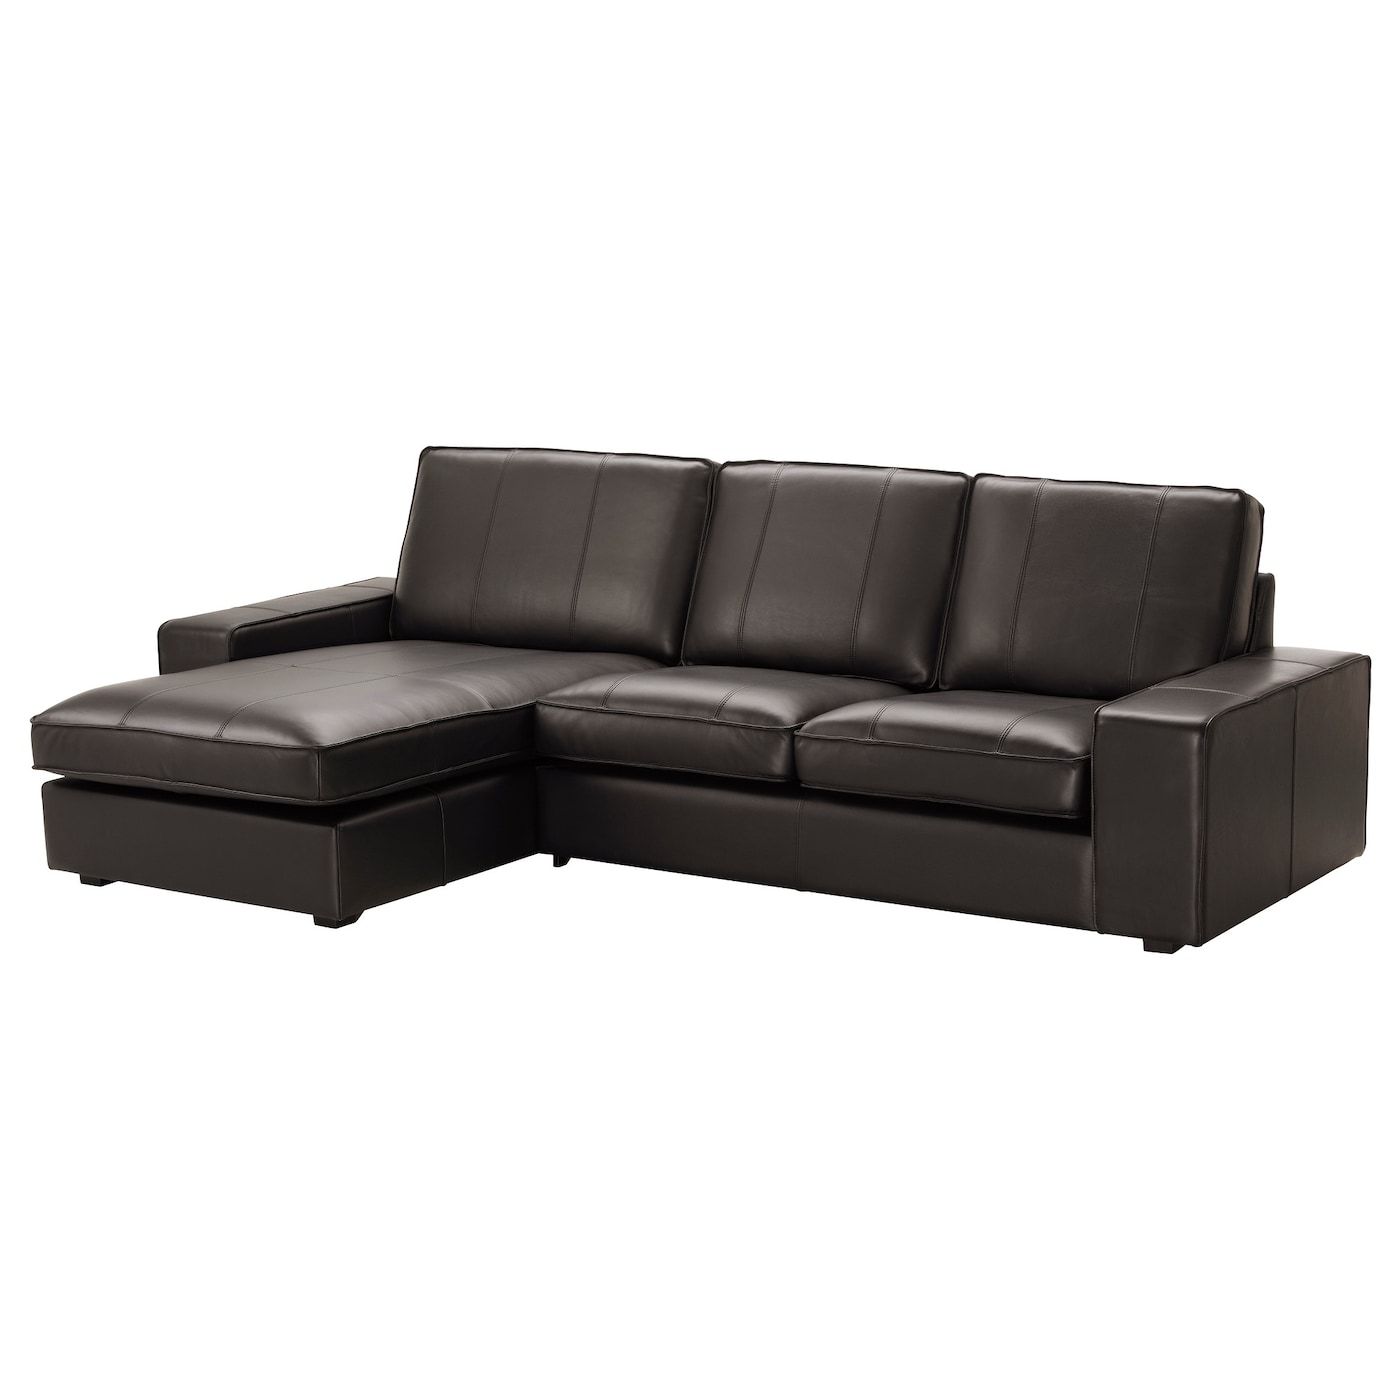 Leather coated fabric sofas ikea for Chaise longue bank